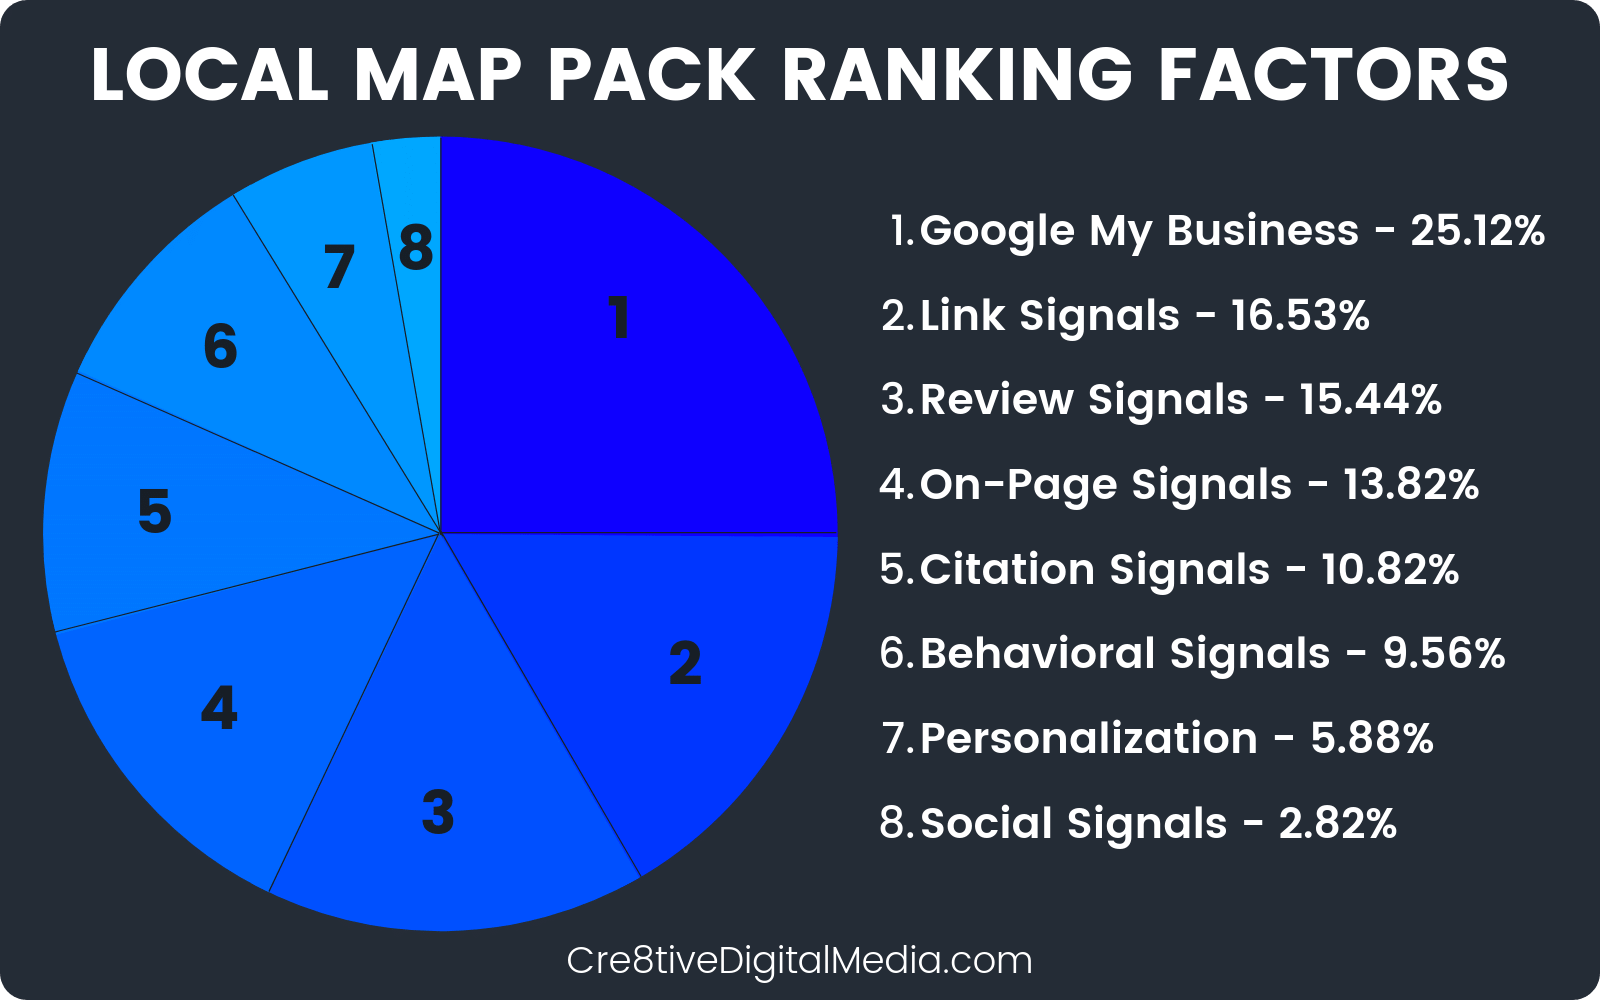 Local Pack/Finder Ranking Factors